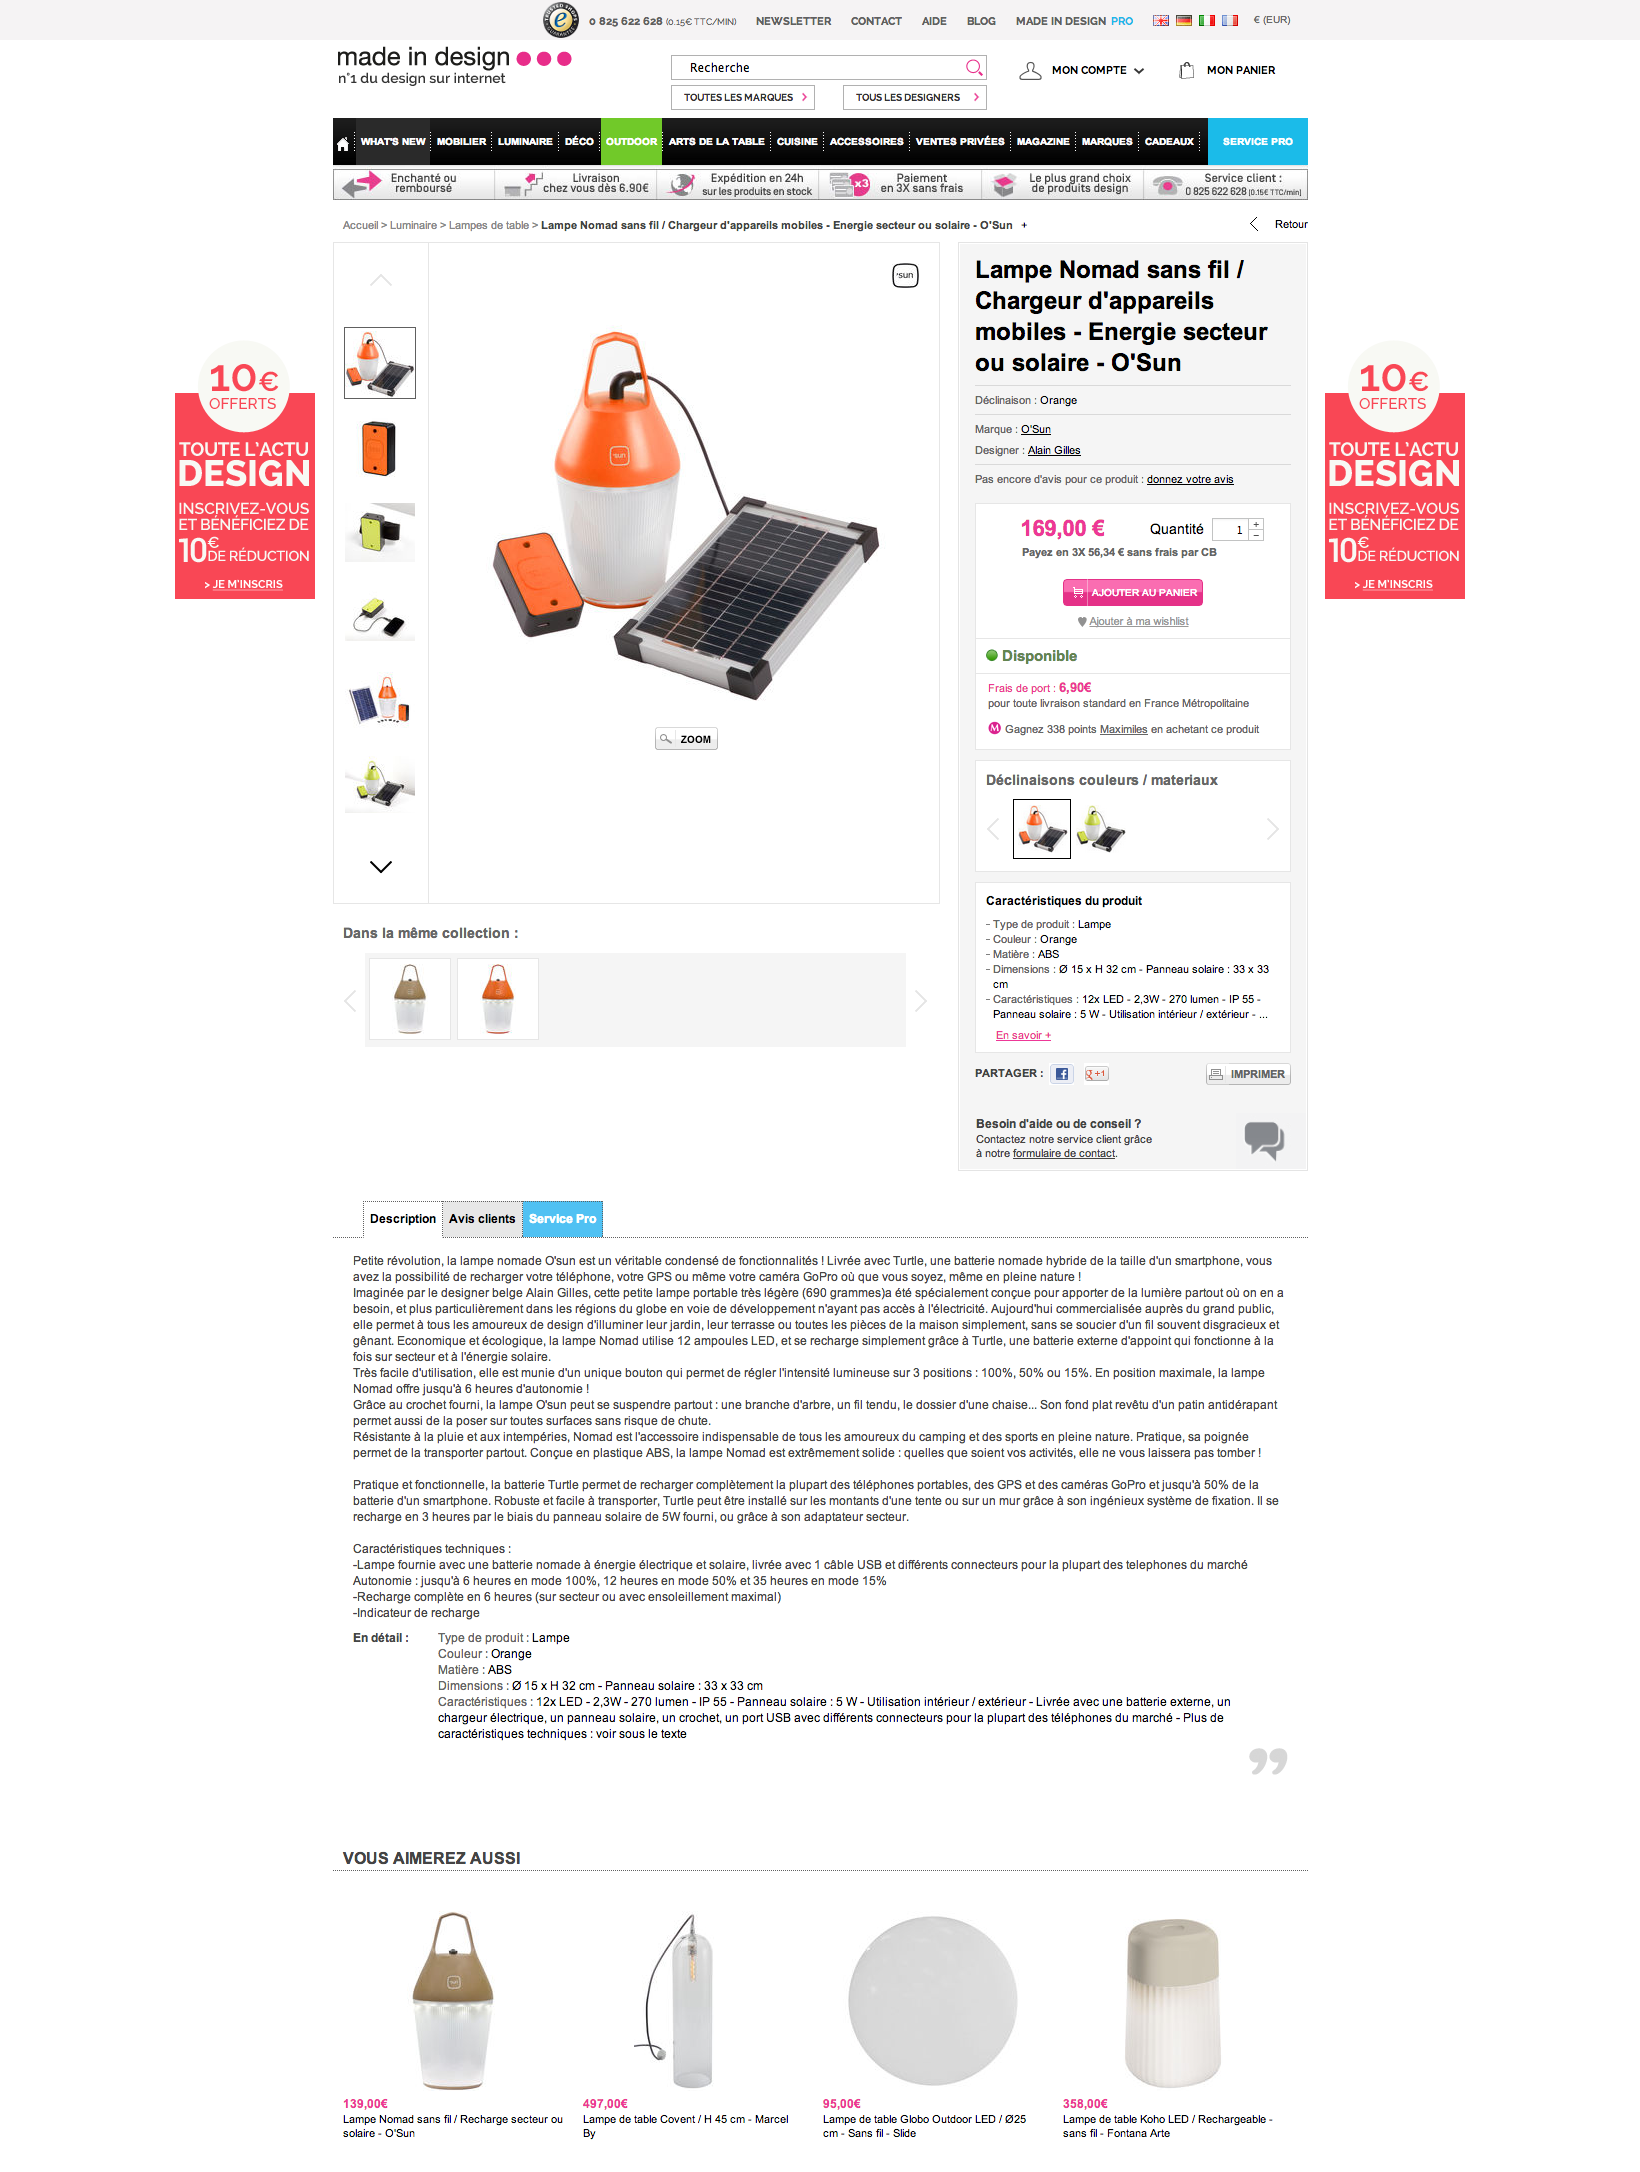 ergo-note-revue-ergonomique-du-site-made-in-design-com-page-produit